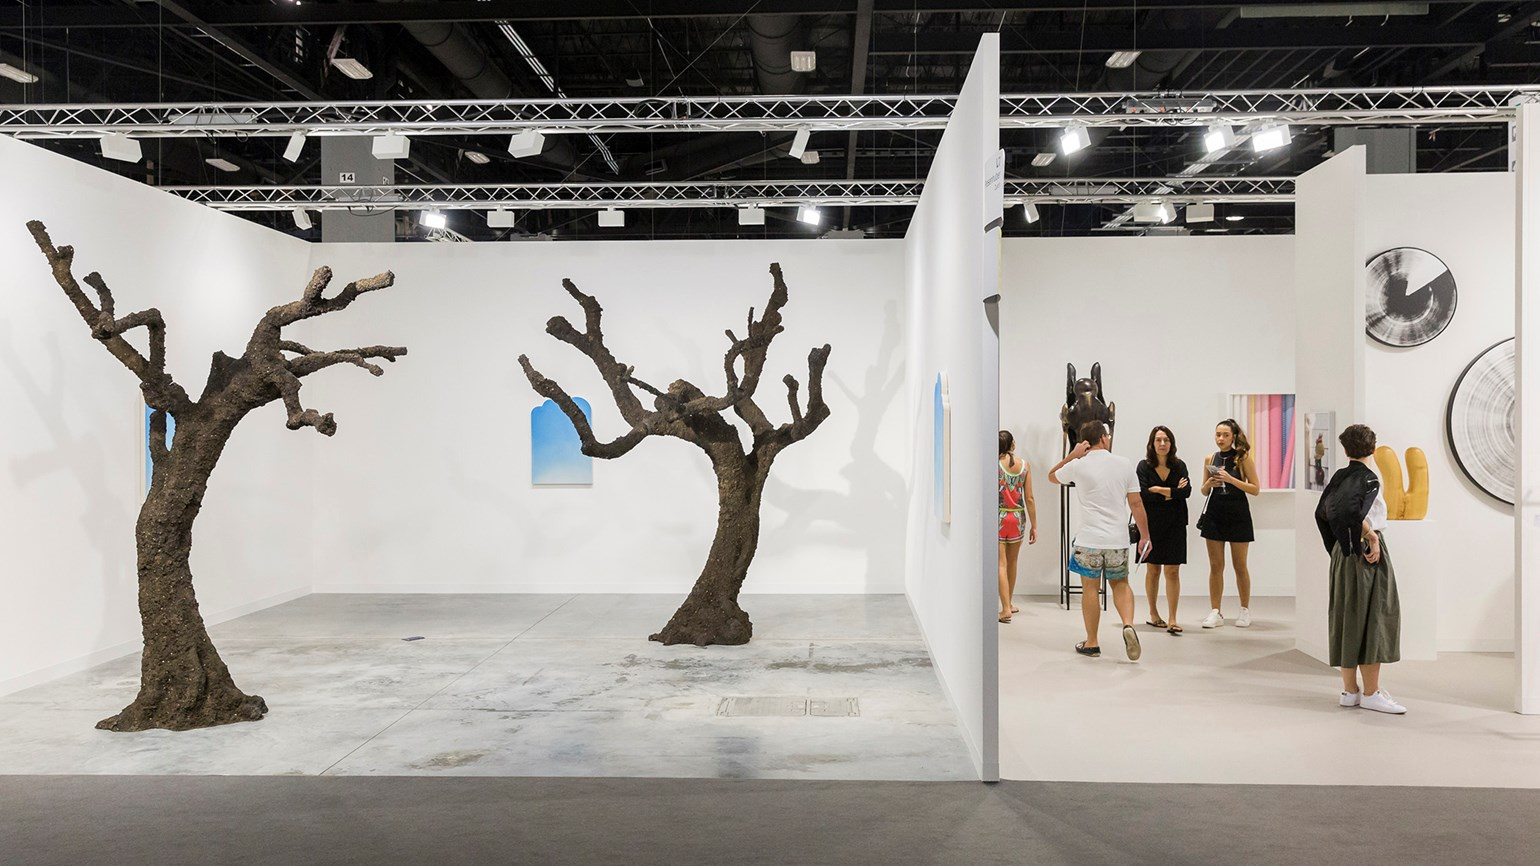 Art Basel turns Miami into one big artist colony